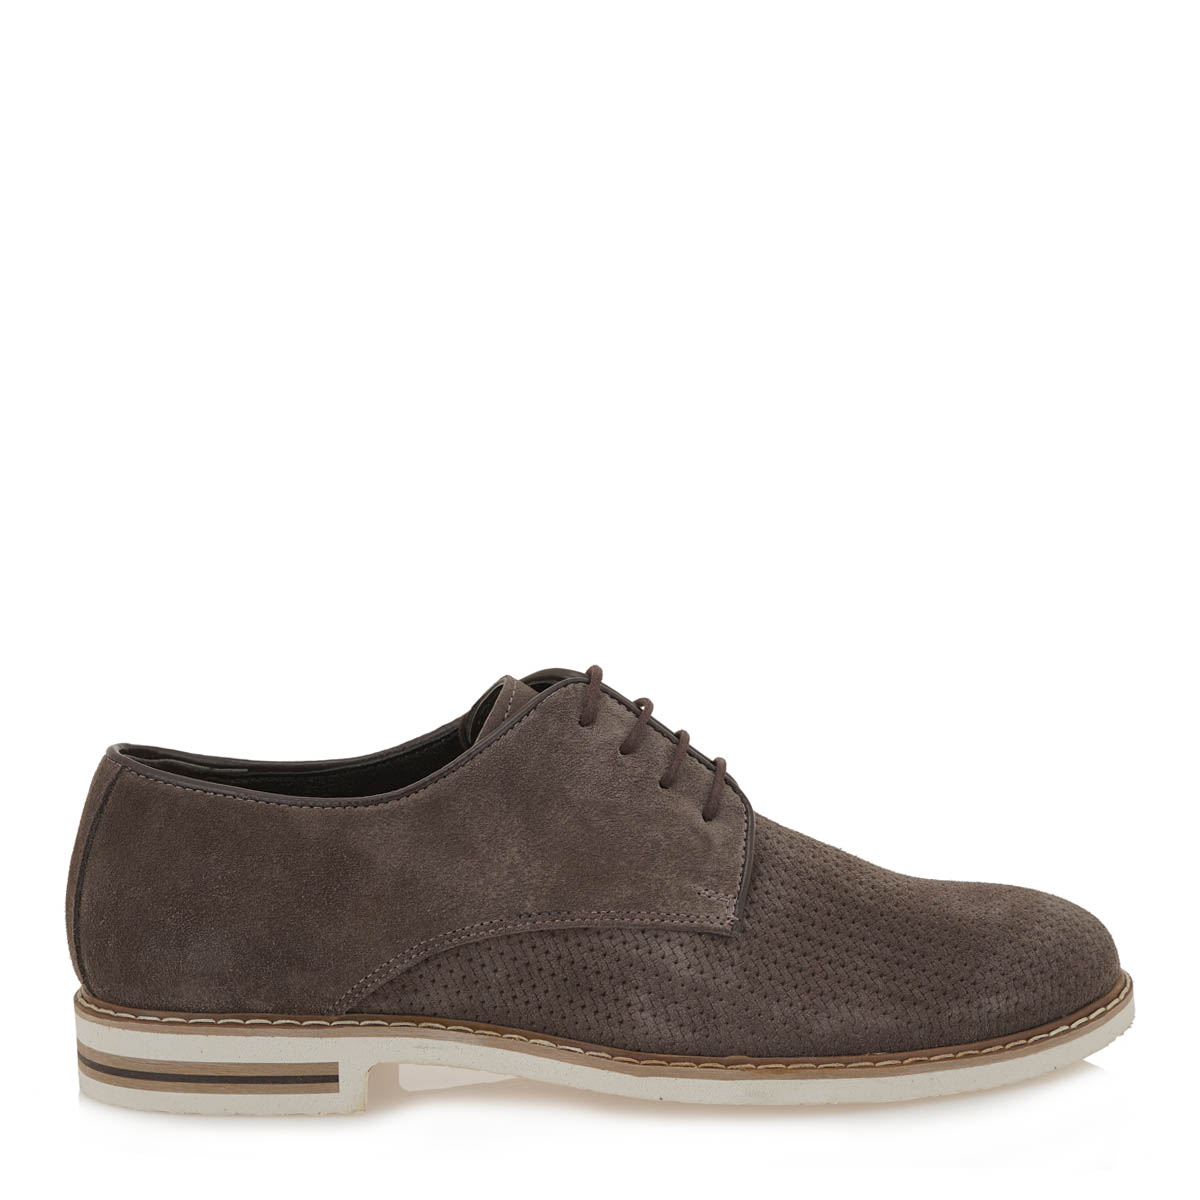 LACE-UP SHOES σχέδιο: I555V0232 outlet   ανδρικα   lace up shoes